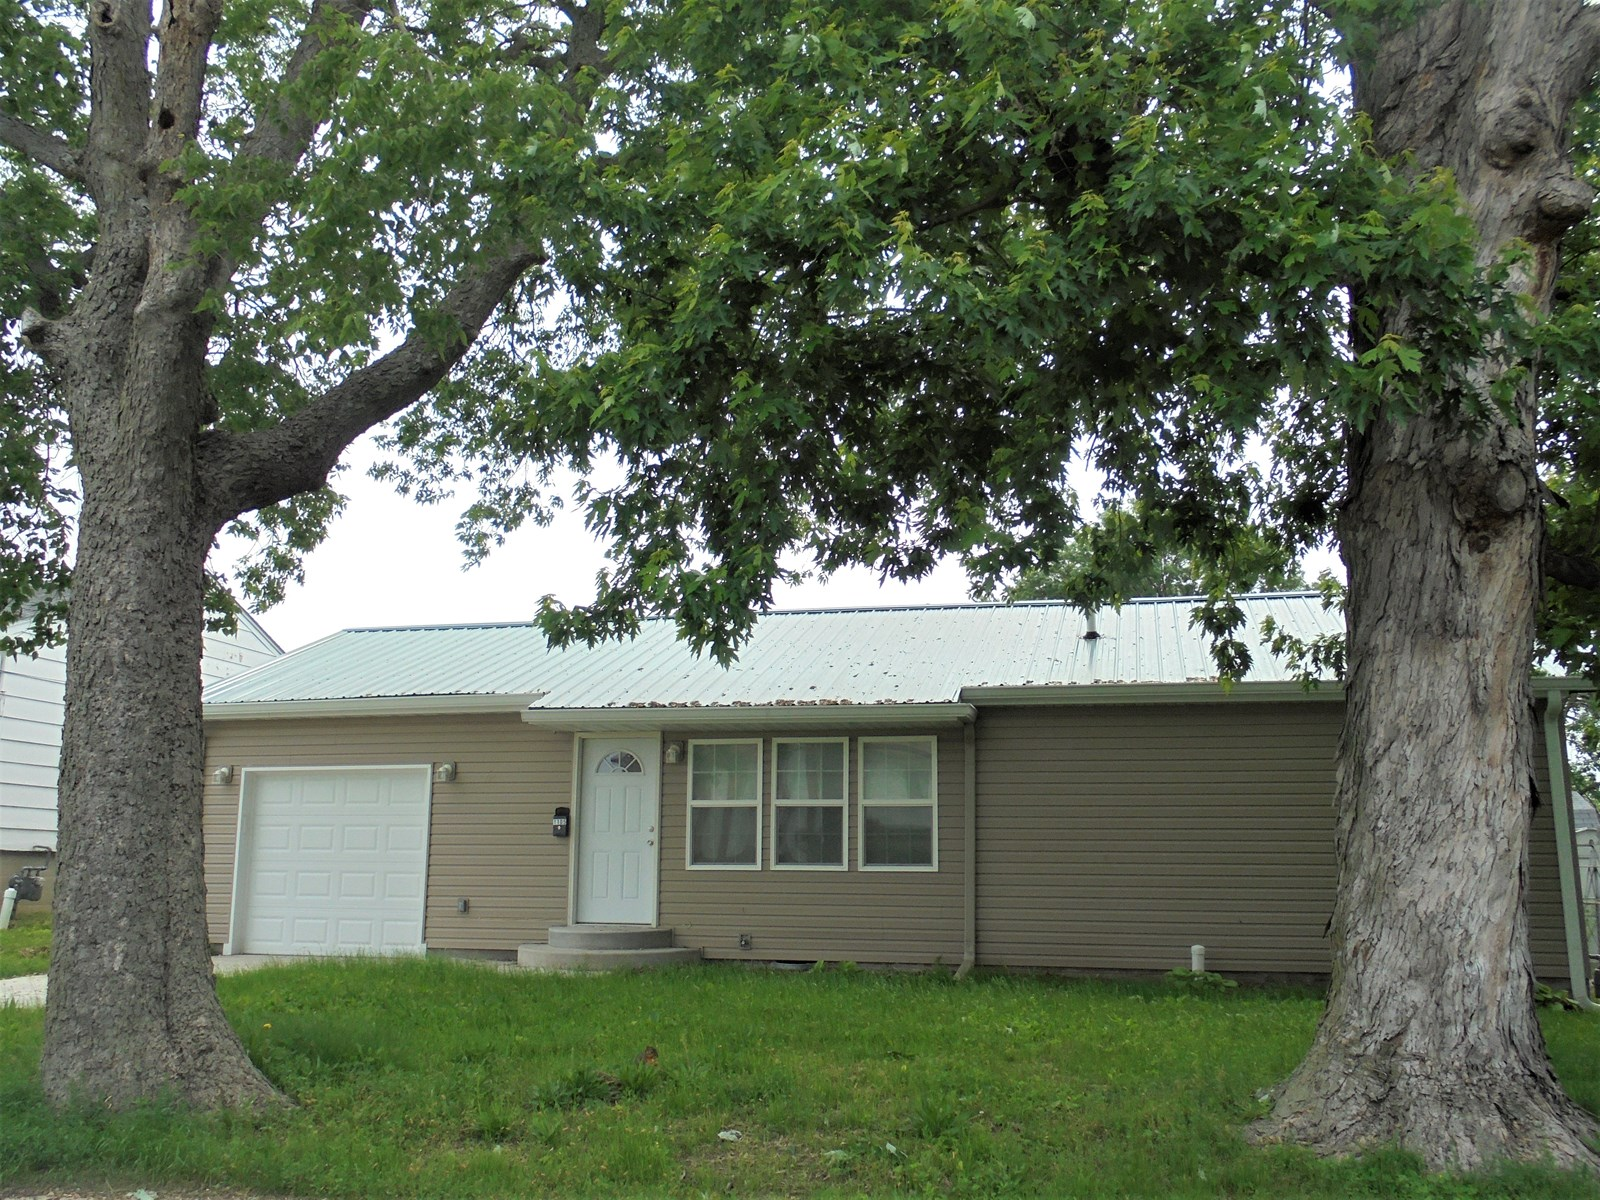 For Sale Ranch Home, West Side Chillicothe, MO